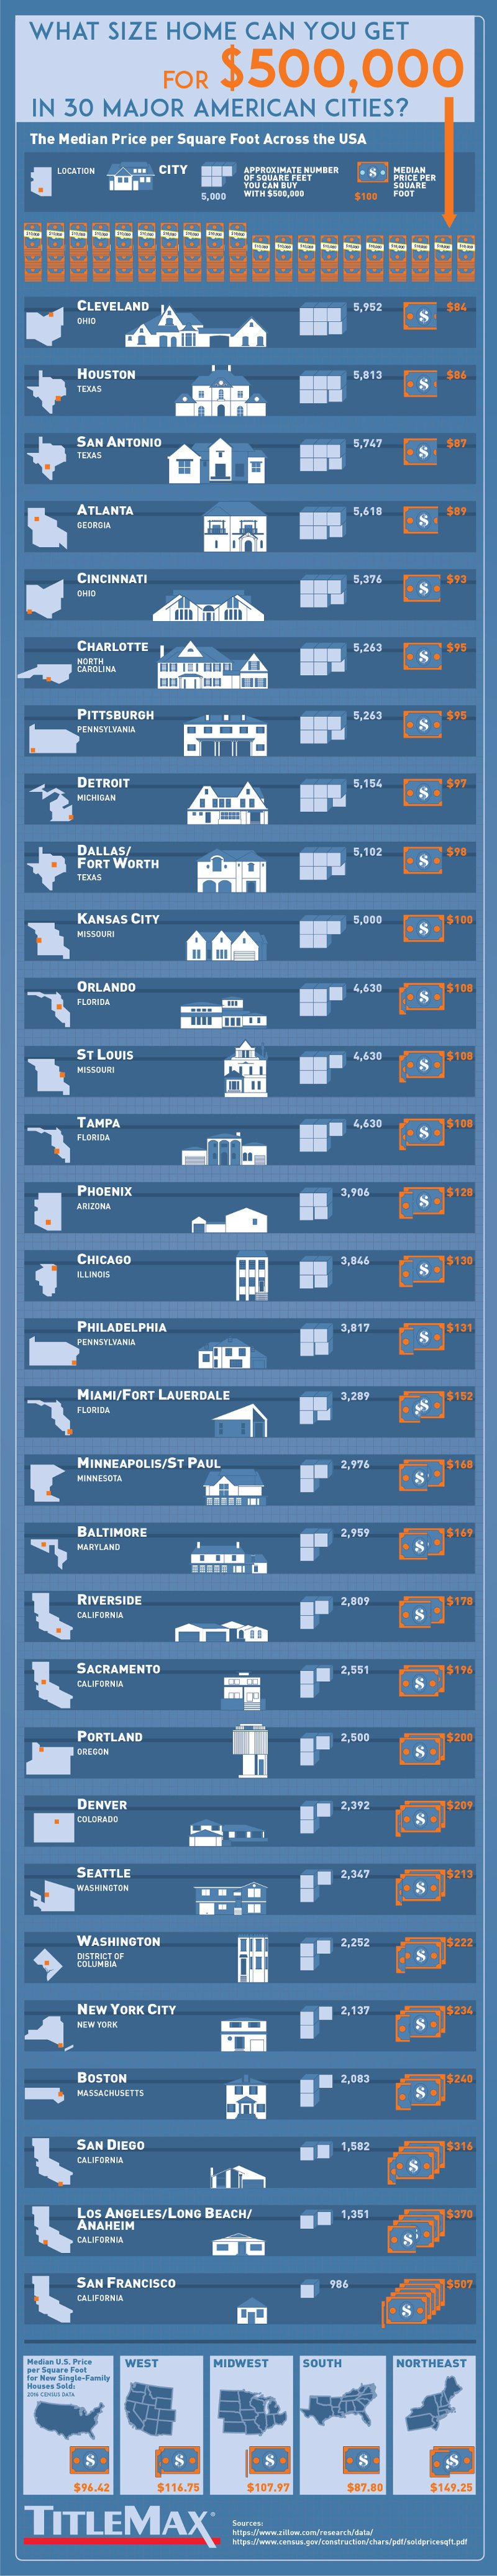 Homes for $500k in Each State